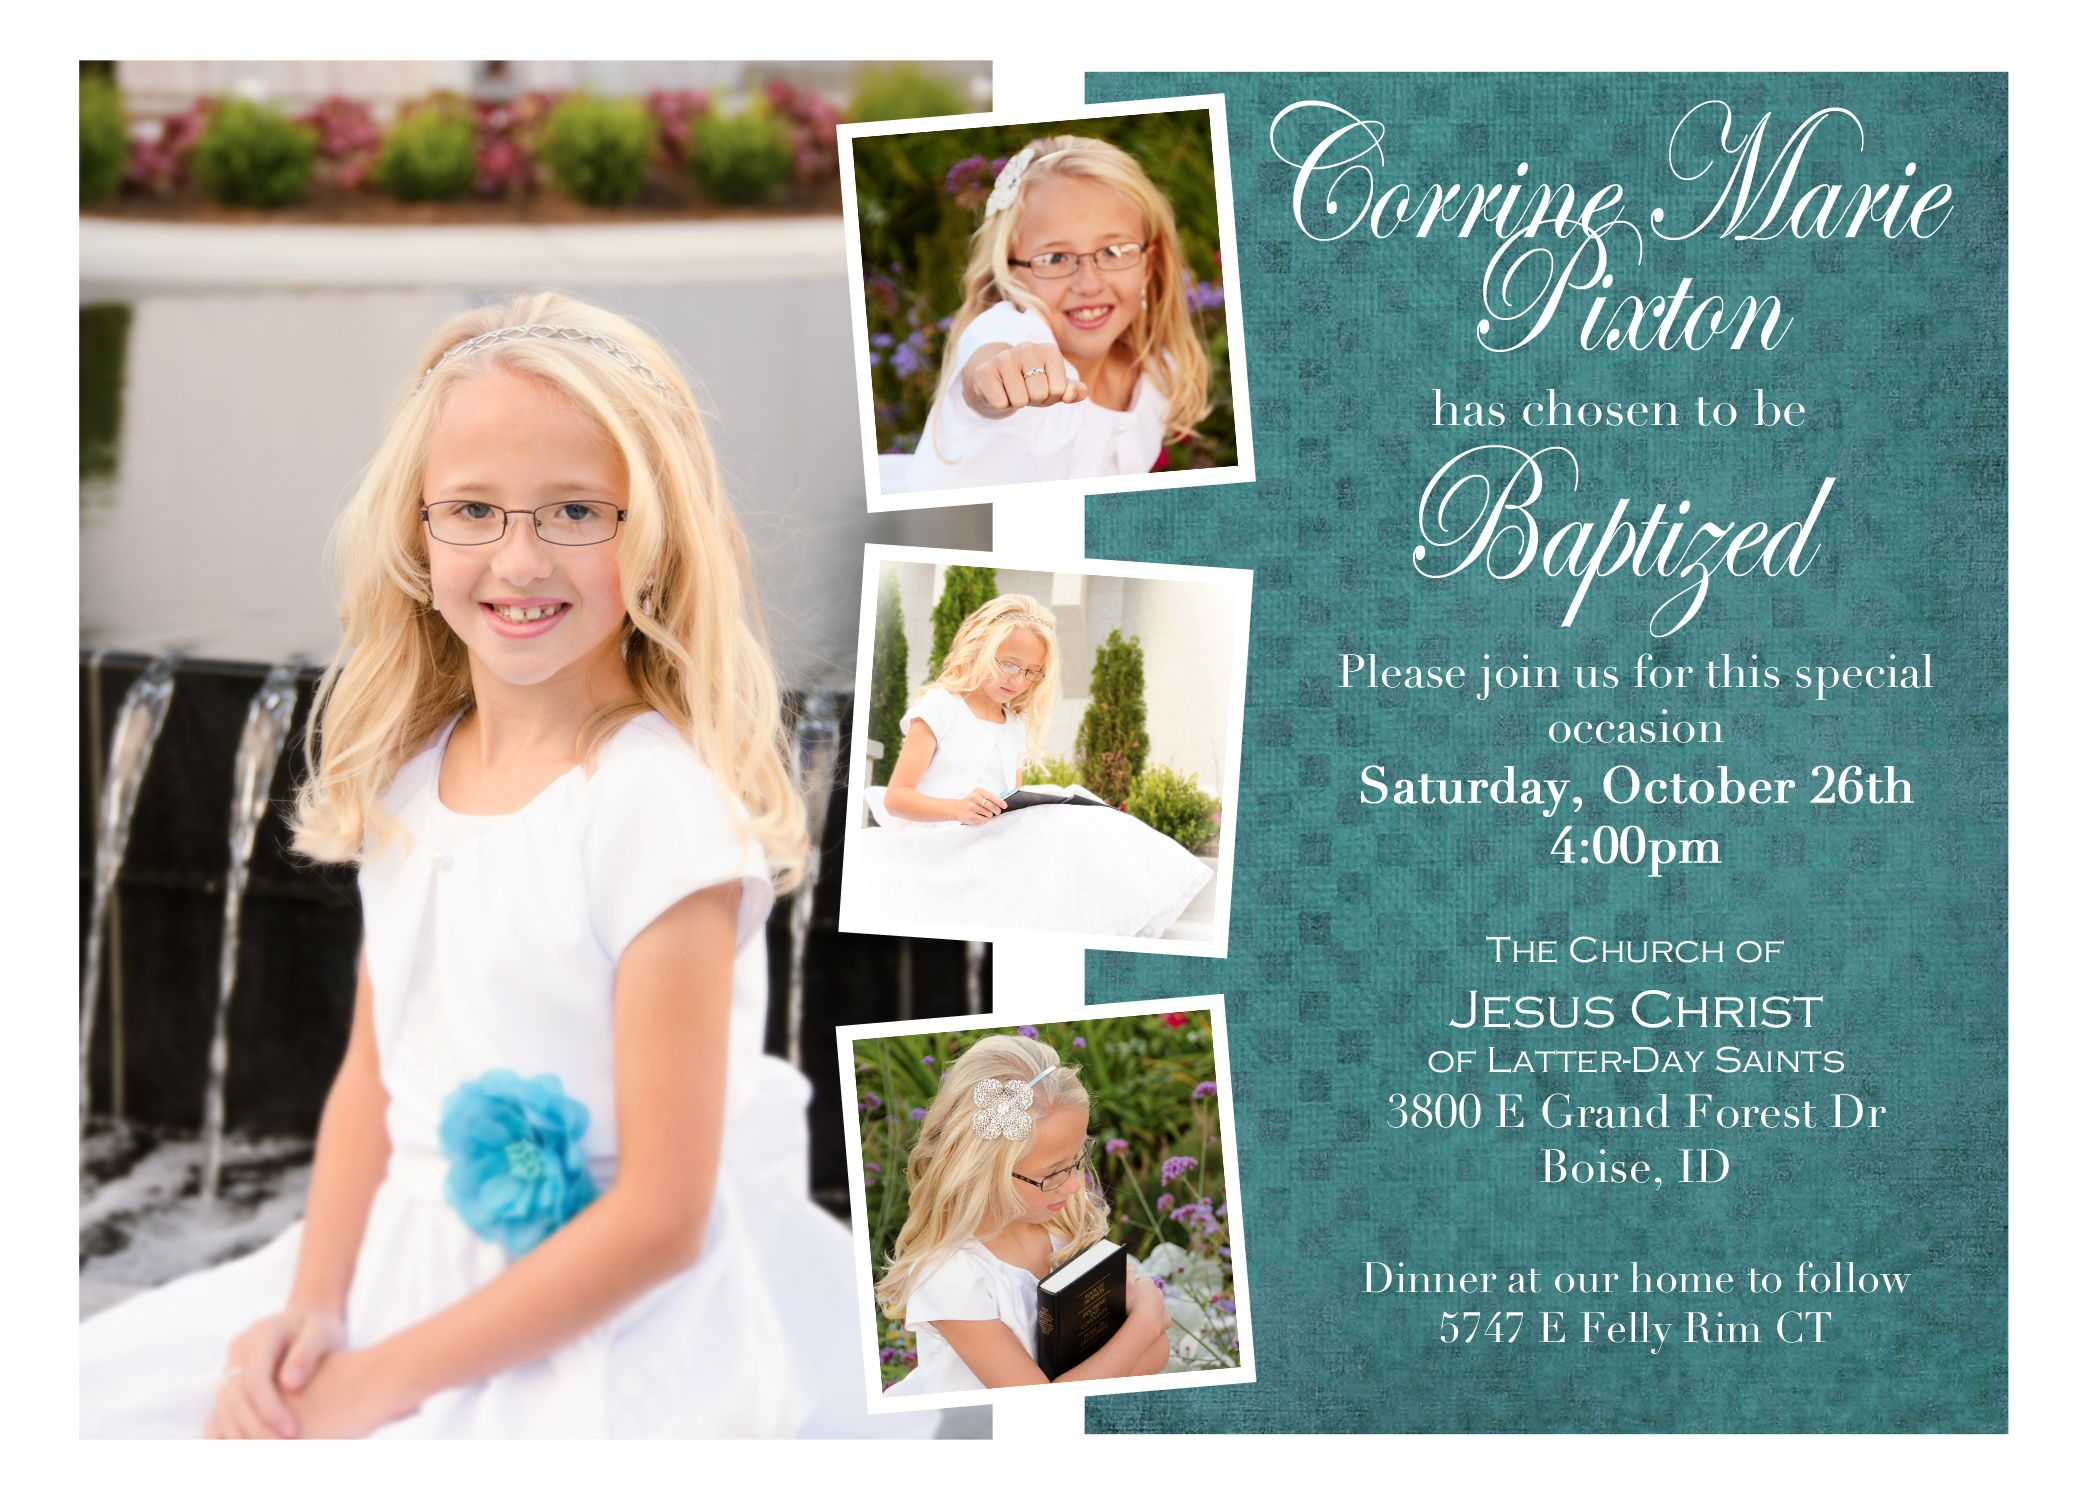 Lds Baptism Invitation Photoshop Find More Lds Greats At